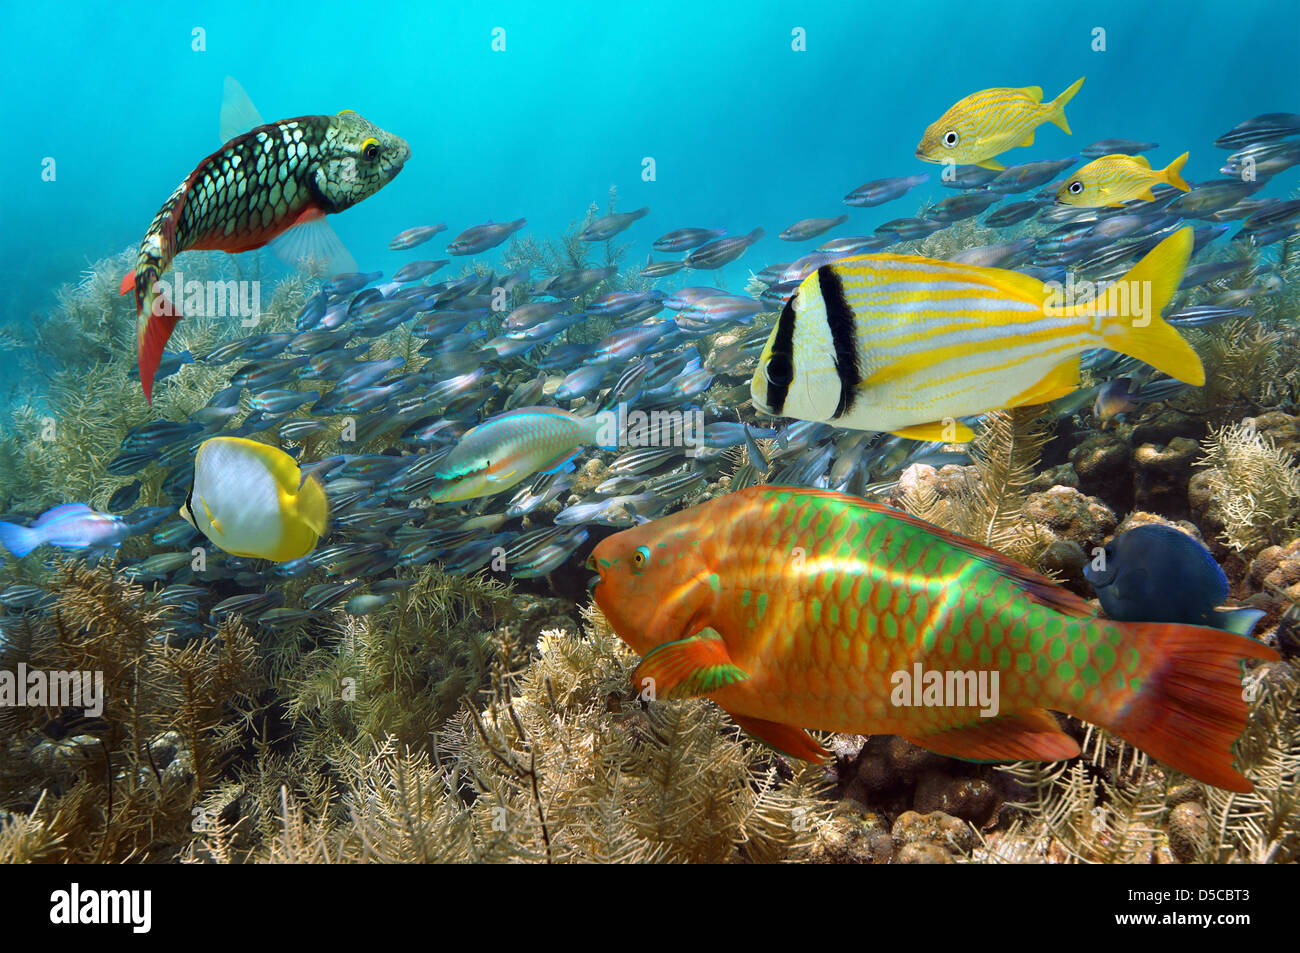 Scuba diving in a coral reef with shoal of colorful fish - Stock Image